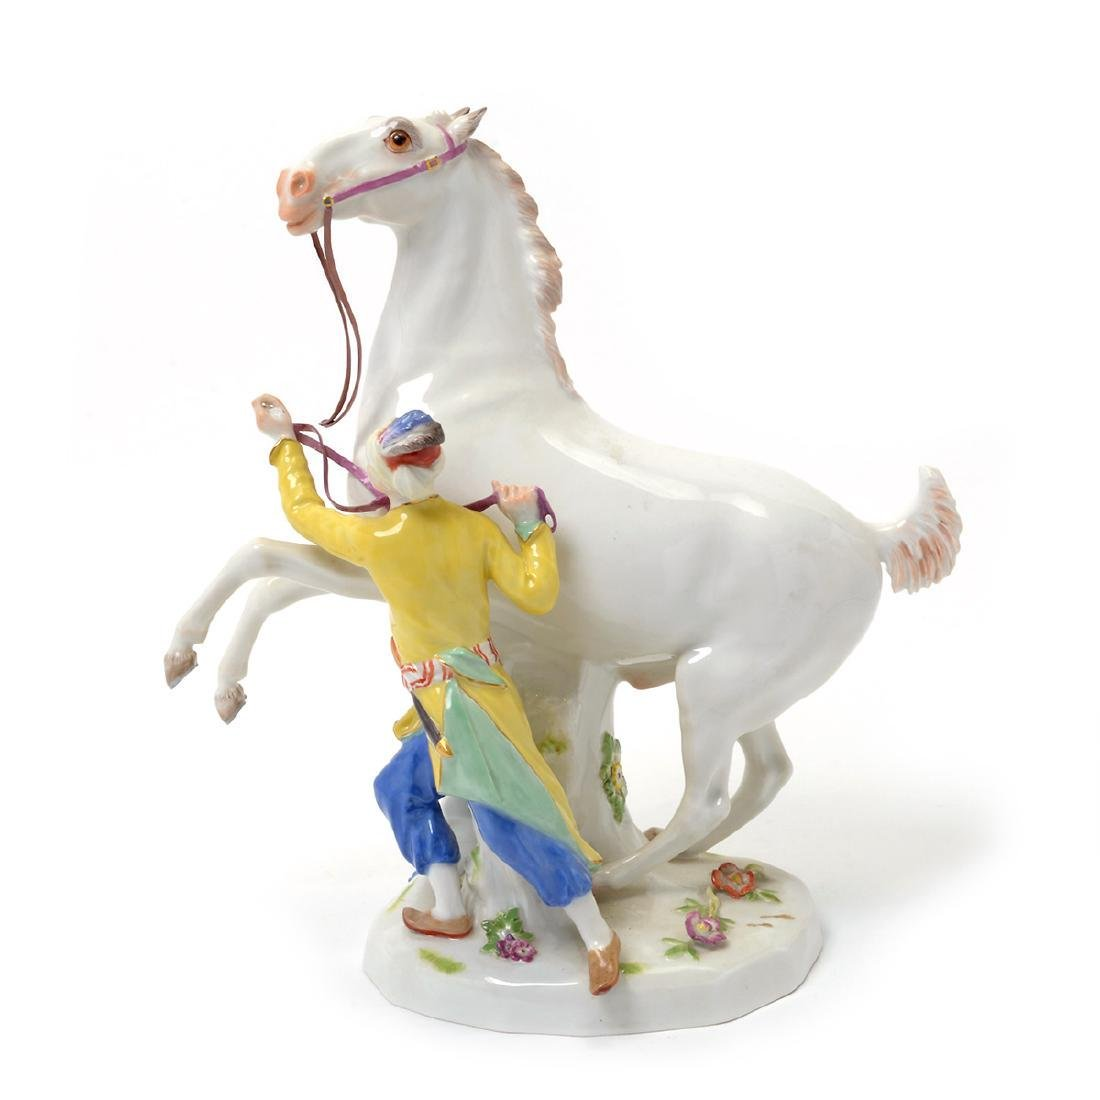 19TH C. MEISSEN FIGURE OF ATTENDANT W/ HORSE - 4